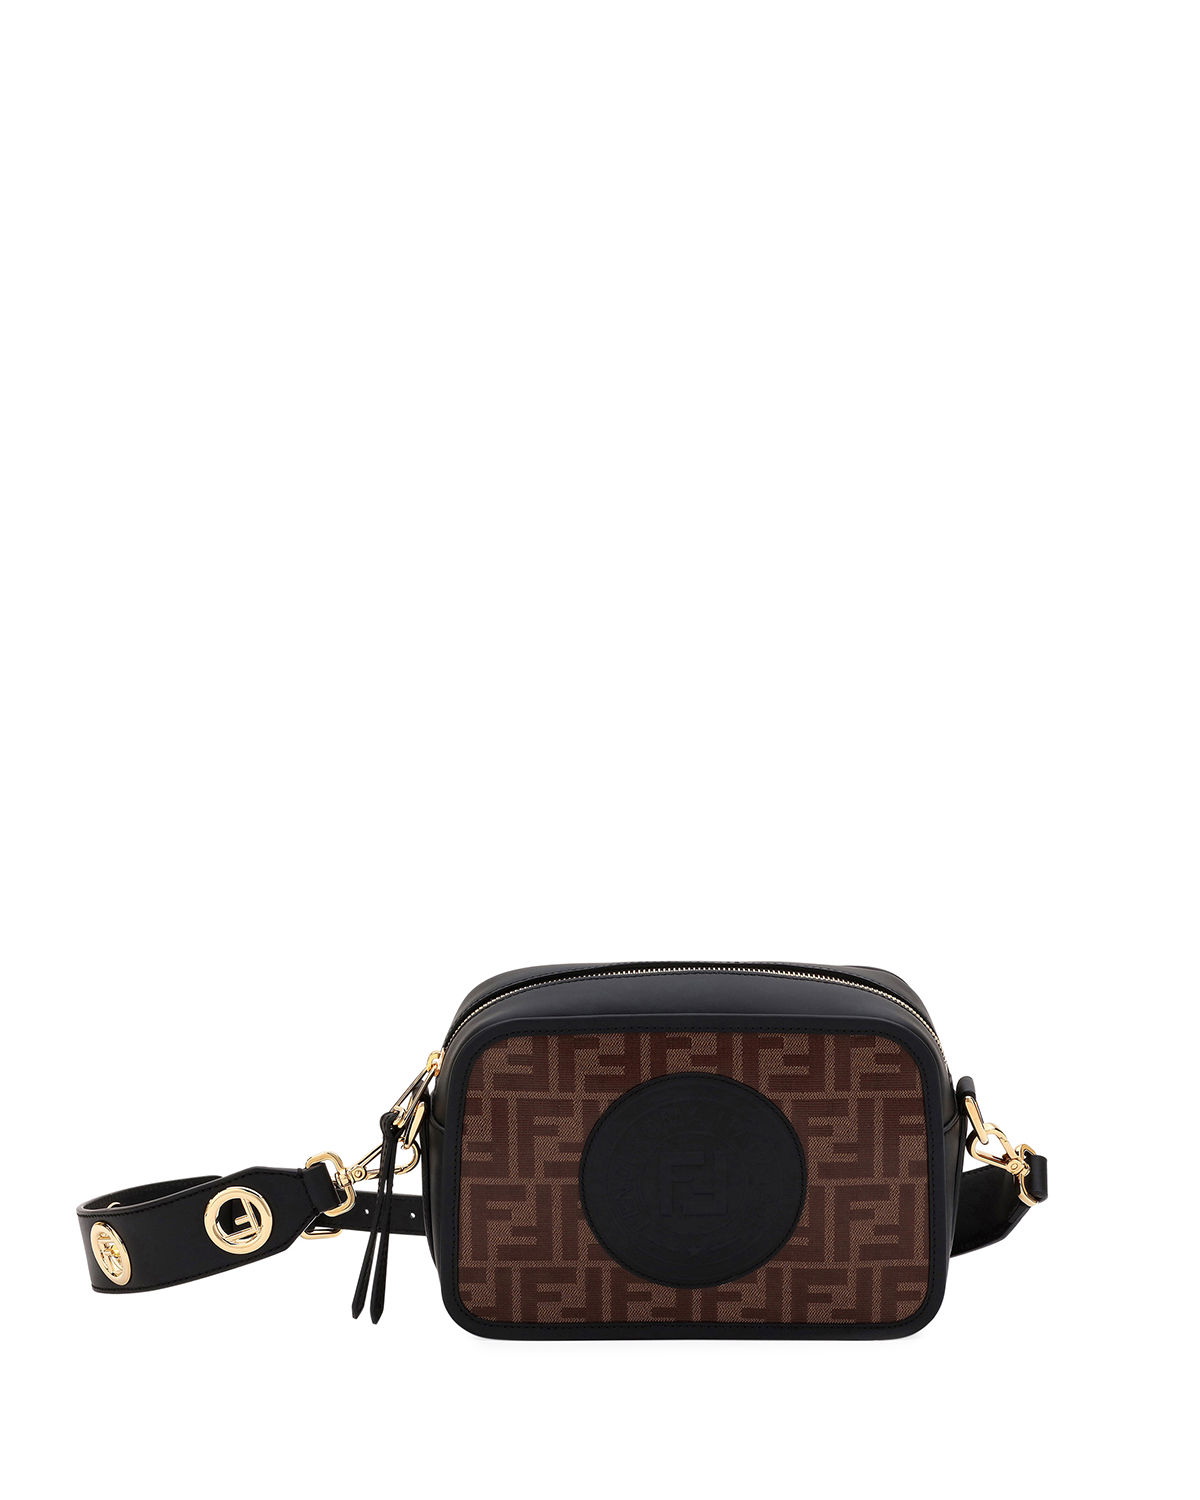 200f7a1f0024 Fendi FendiCam FF Canvas Crossbody Camera Bag